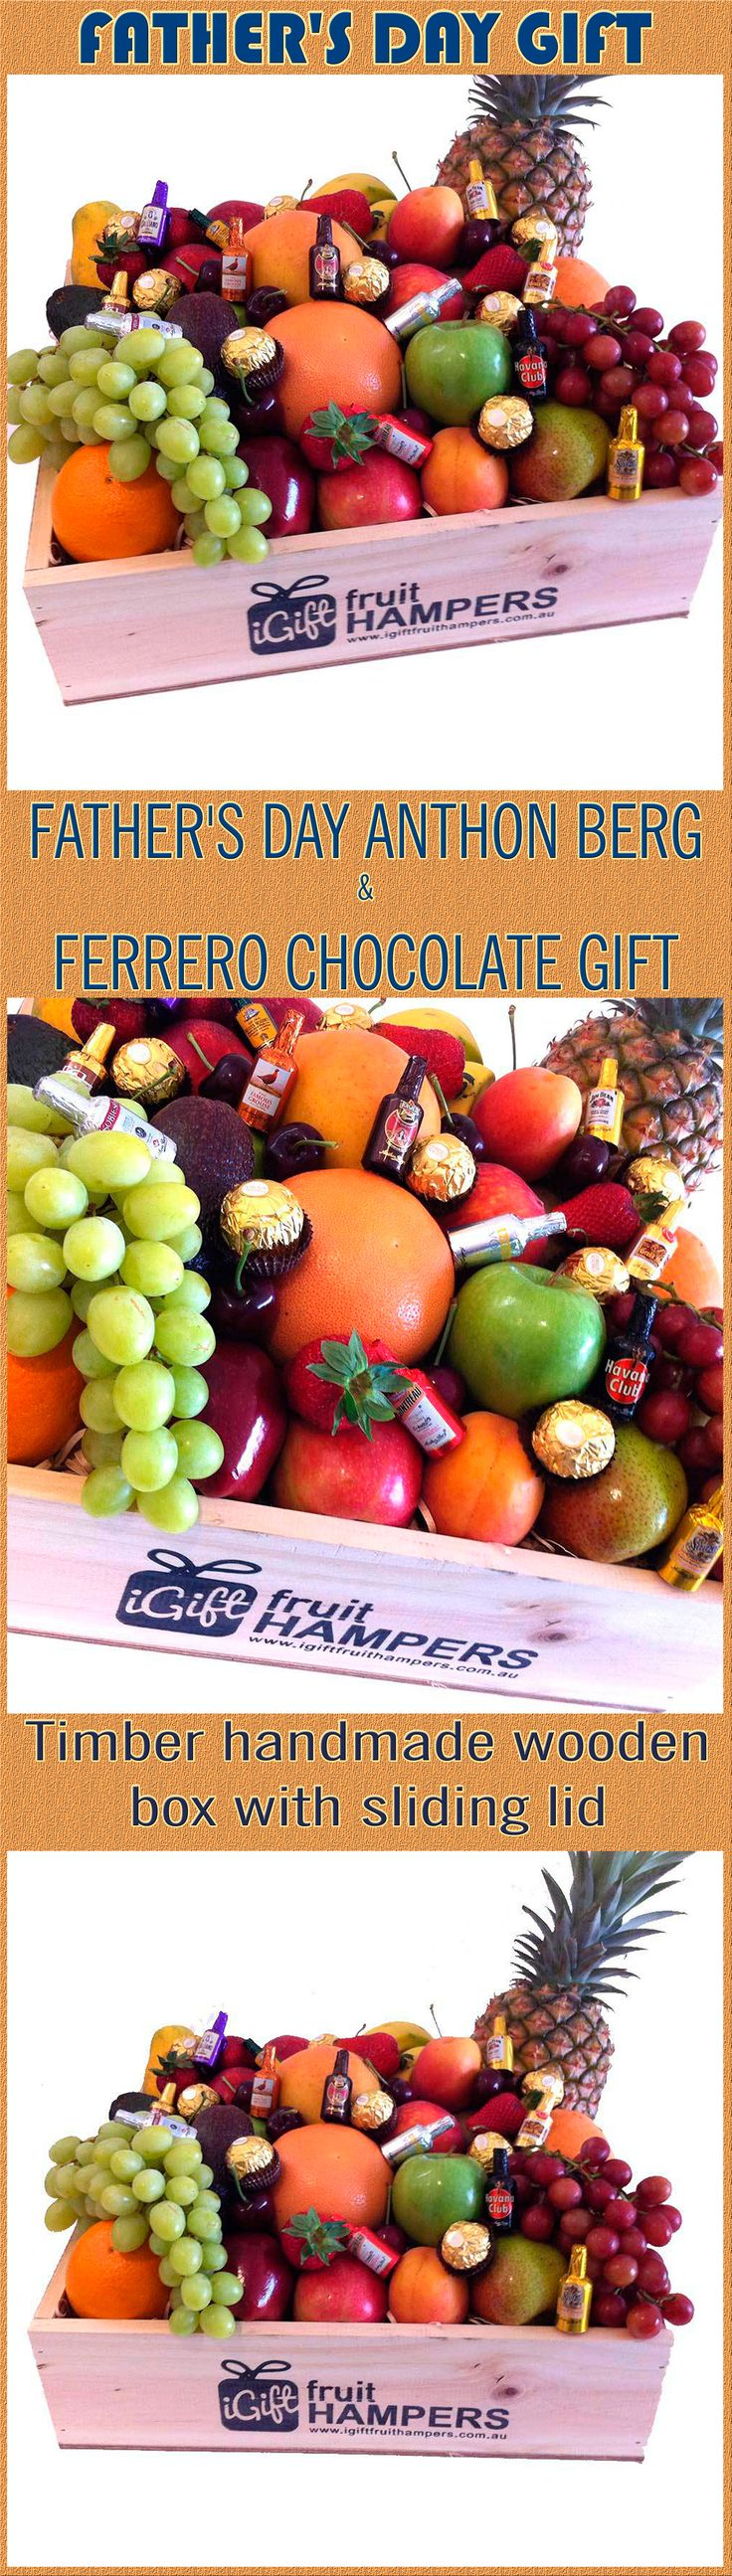 Father's Day Fruit Hampers, treat your dad with one of our beautiful fresh fruit Father's Day Gift Hampers. Give dad the gift of health this Father's Day by sending a Fruit Only Hamper .   #mothersday #FruitHampers #FruitHamper #Chocolate